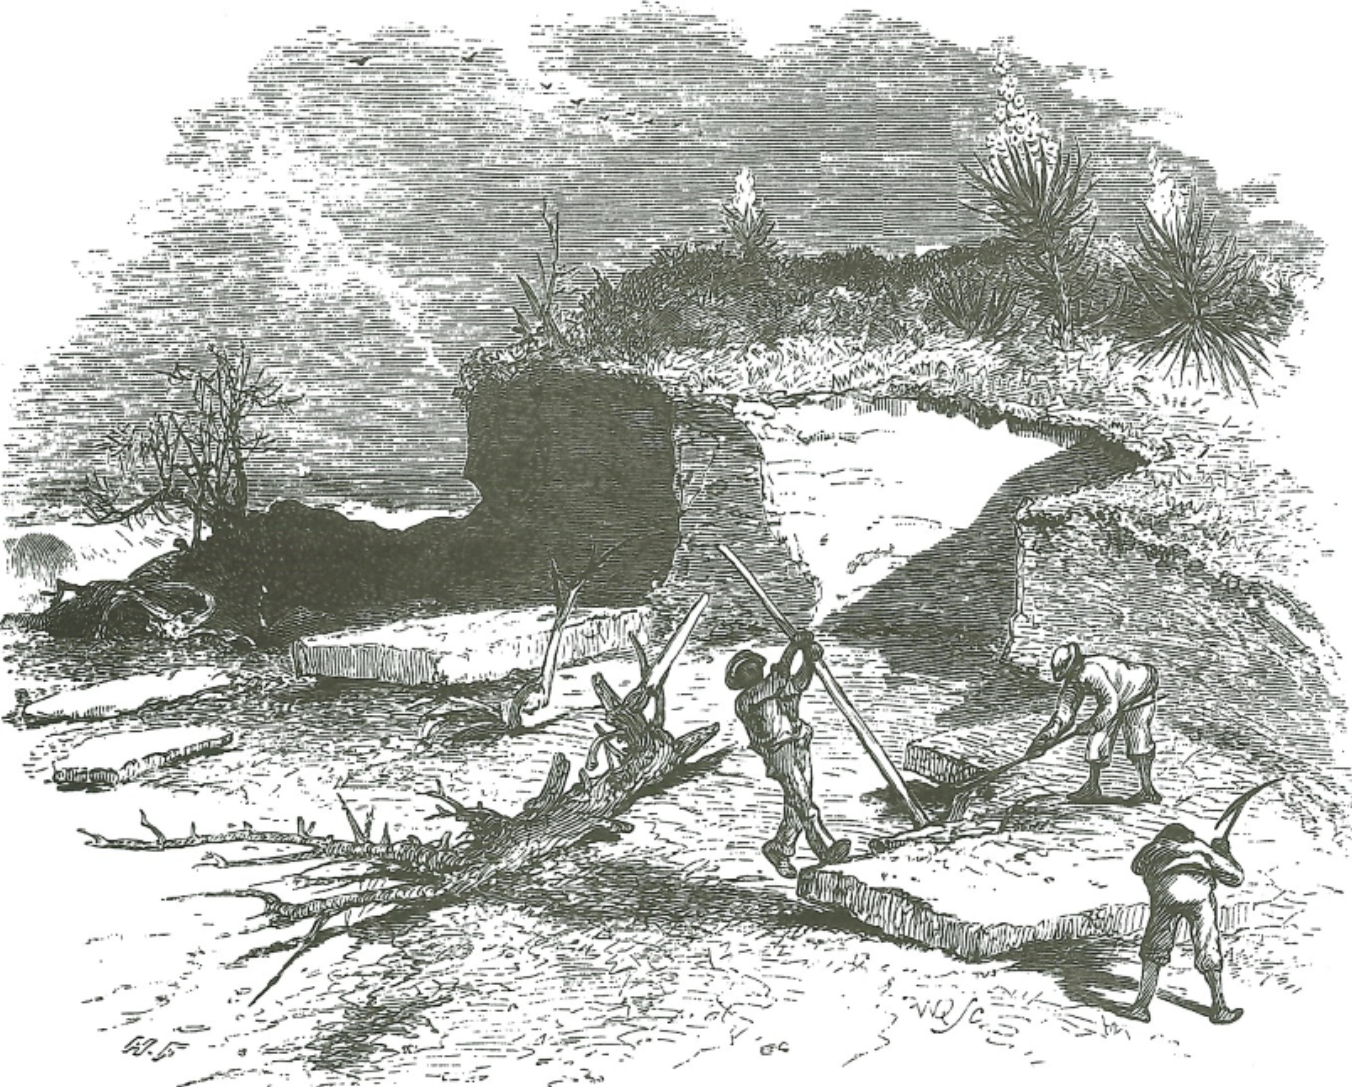 Workers use bars and pickaxes to cut coquina from a quarry.